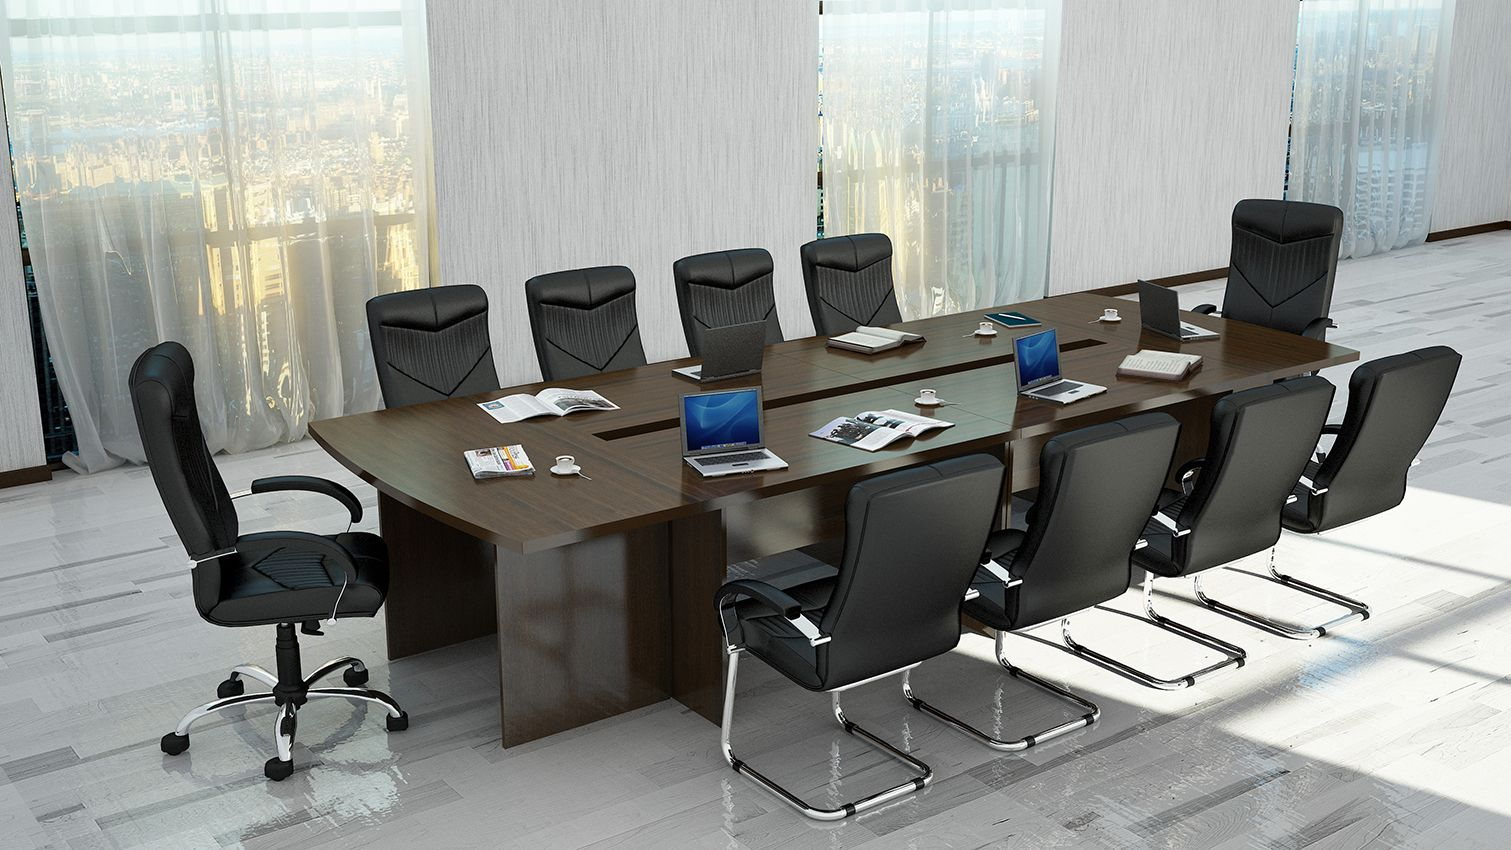 furniture for meetings-amazon